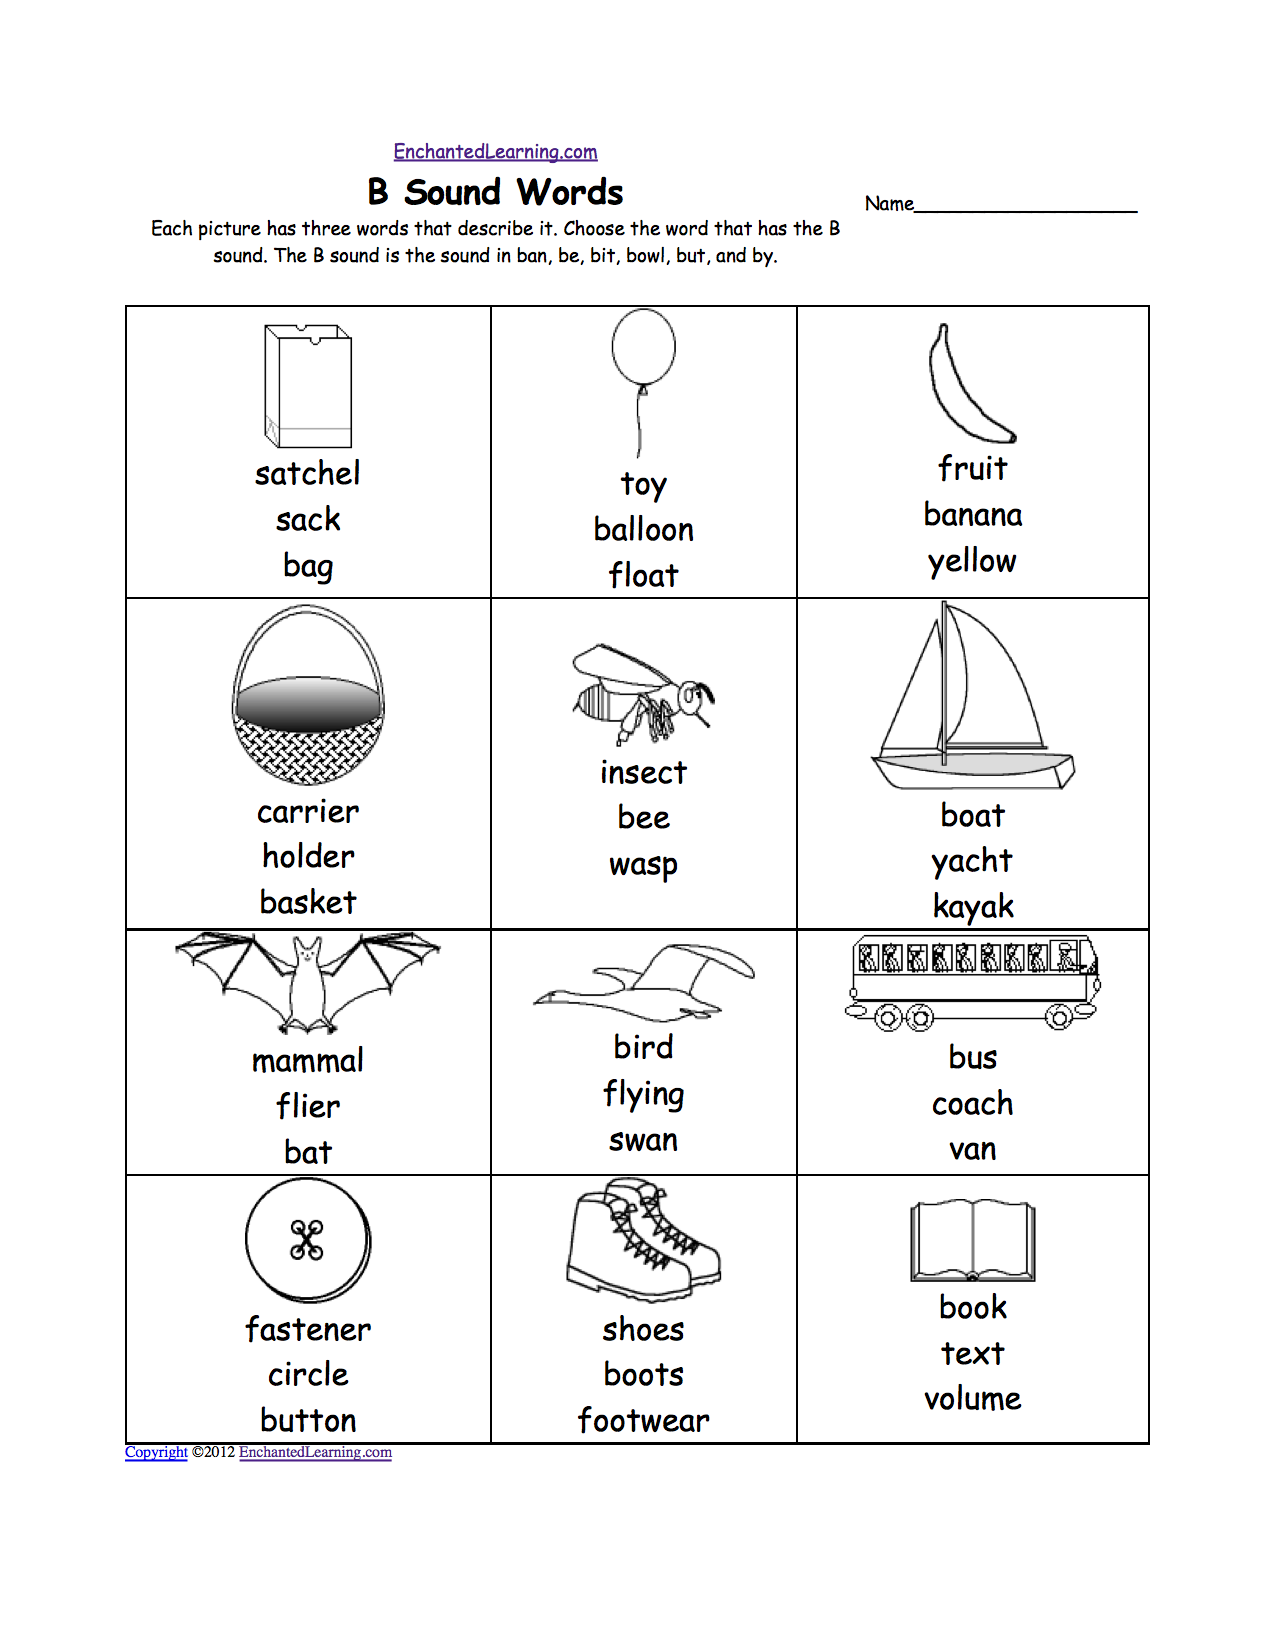 Proatmealus  Winning Phonics Worksheets Multiple Choice Worksheets To Print  With Great Quotbquot Sound Phonics Worksheet Multiple Choice Each Picture Has Three Words That Describe It Choose The Word That Has A Quotbquot Sound The Quotbquot Sound Is The Sound  With Archaic Adding Mixed Number Fractions Worksheets Also Letter F Tracing Worksheets In Addition Critical Thinking Worksheets For St Grade And The Five Pillars Of Islam Worksheet As Well As Bar Graph Worksheets For St Grade Additionally Math Operations Worksheets From Enchantedlearningcom With Proatmealus  Great Phonics Worksheets Multiple Choice Worksheets To Print  With Archaic Quotbquot Sound Phonics Worksheet Multiple Choice Each Picture Has Three Words That Describe It Choose The Word That Has A Quotbquot Sound The Quotbquot Sound Is The Sound  And Winning Adding Mixed Number Fractions Worksheets Also Letter F Tracing Worksheets In Addition Critical Thinking Worksheets For St Grade From Enchantedlearningcom